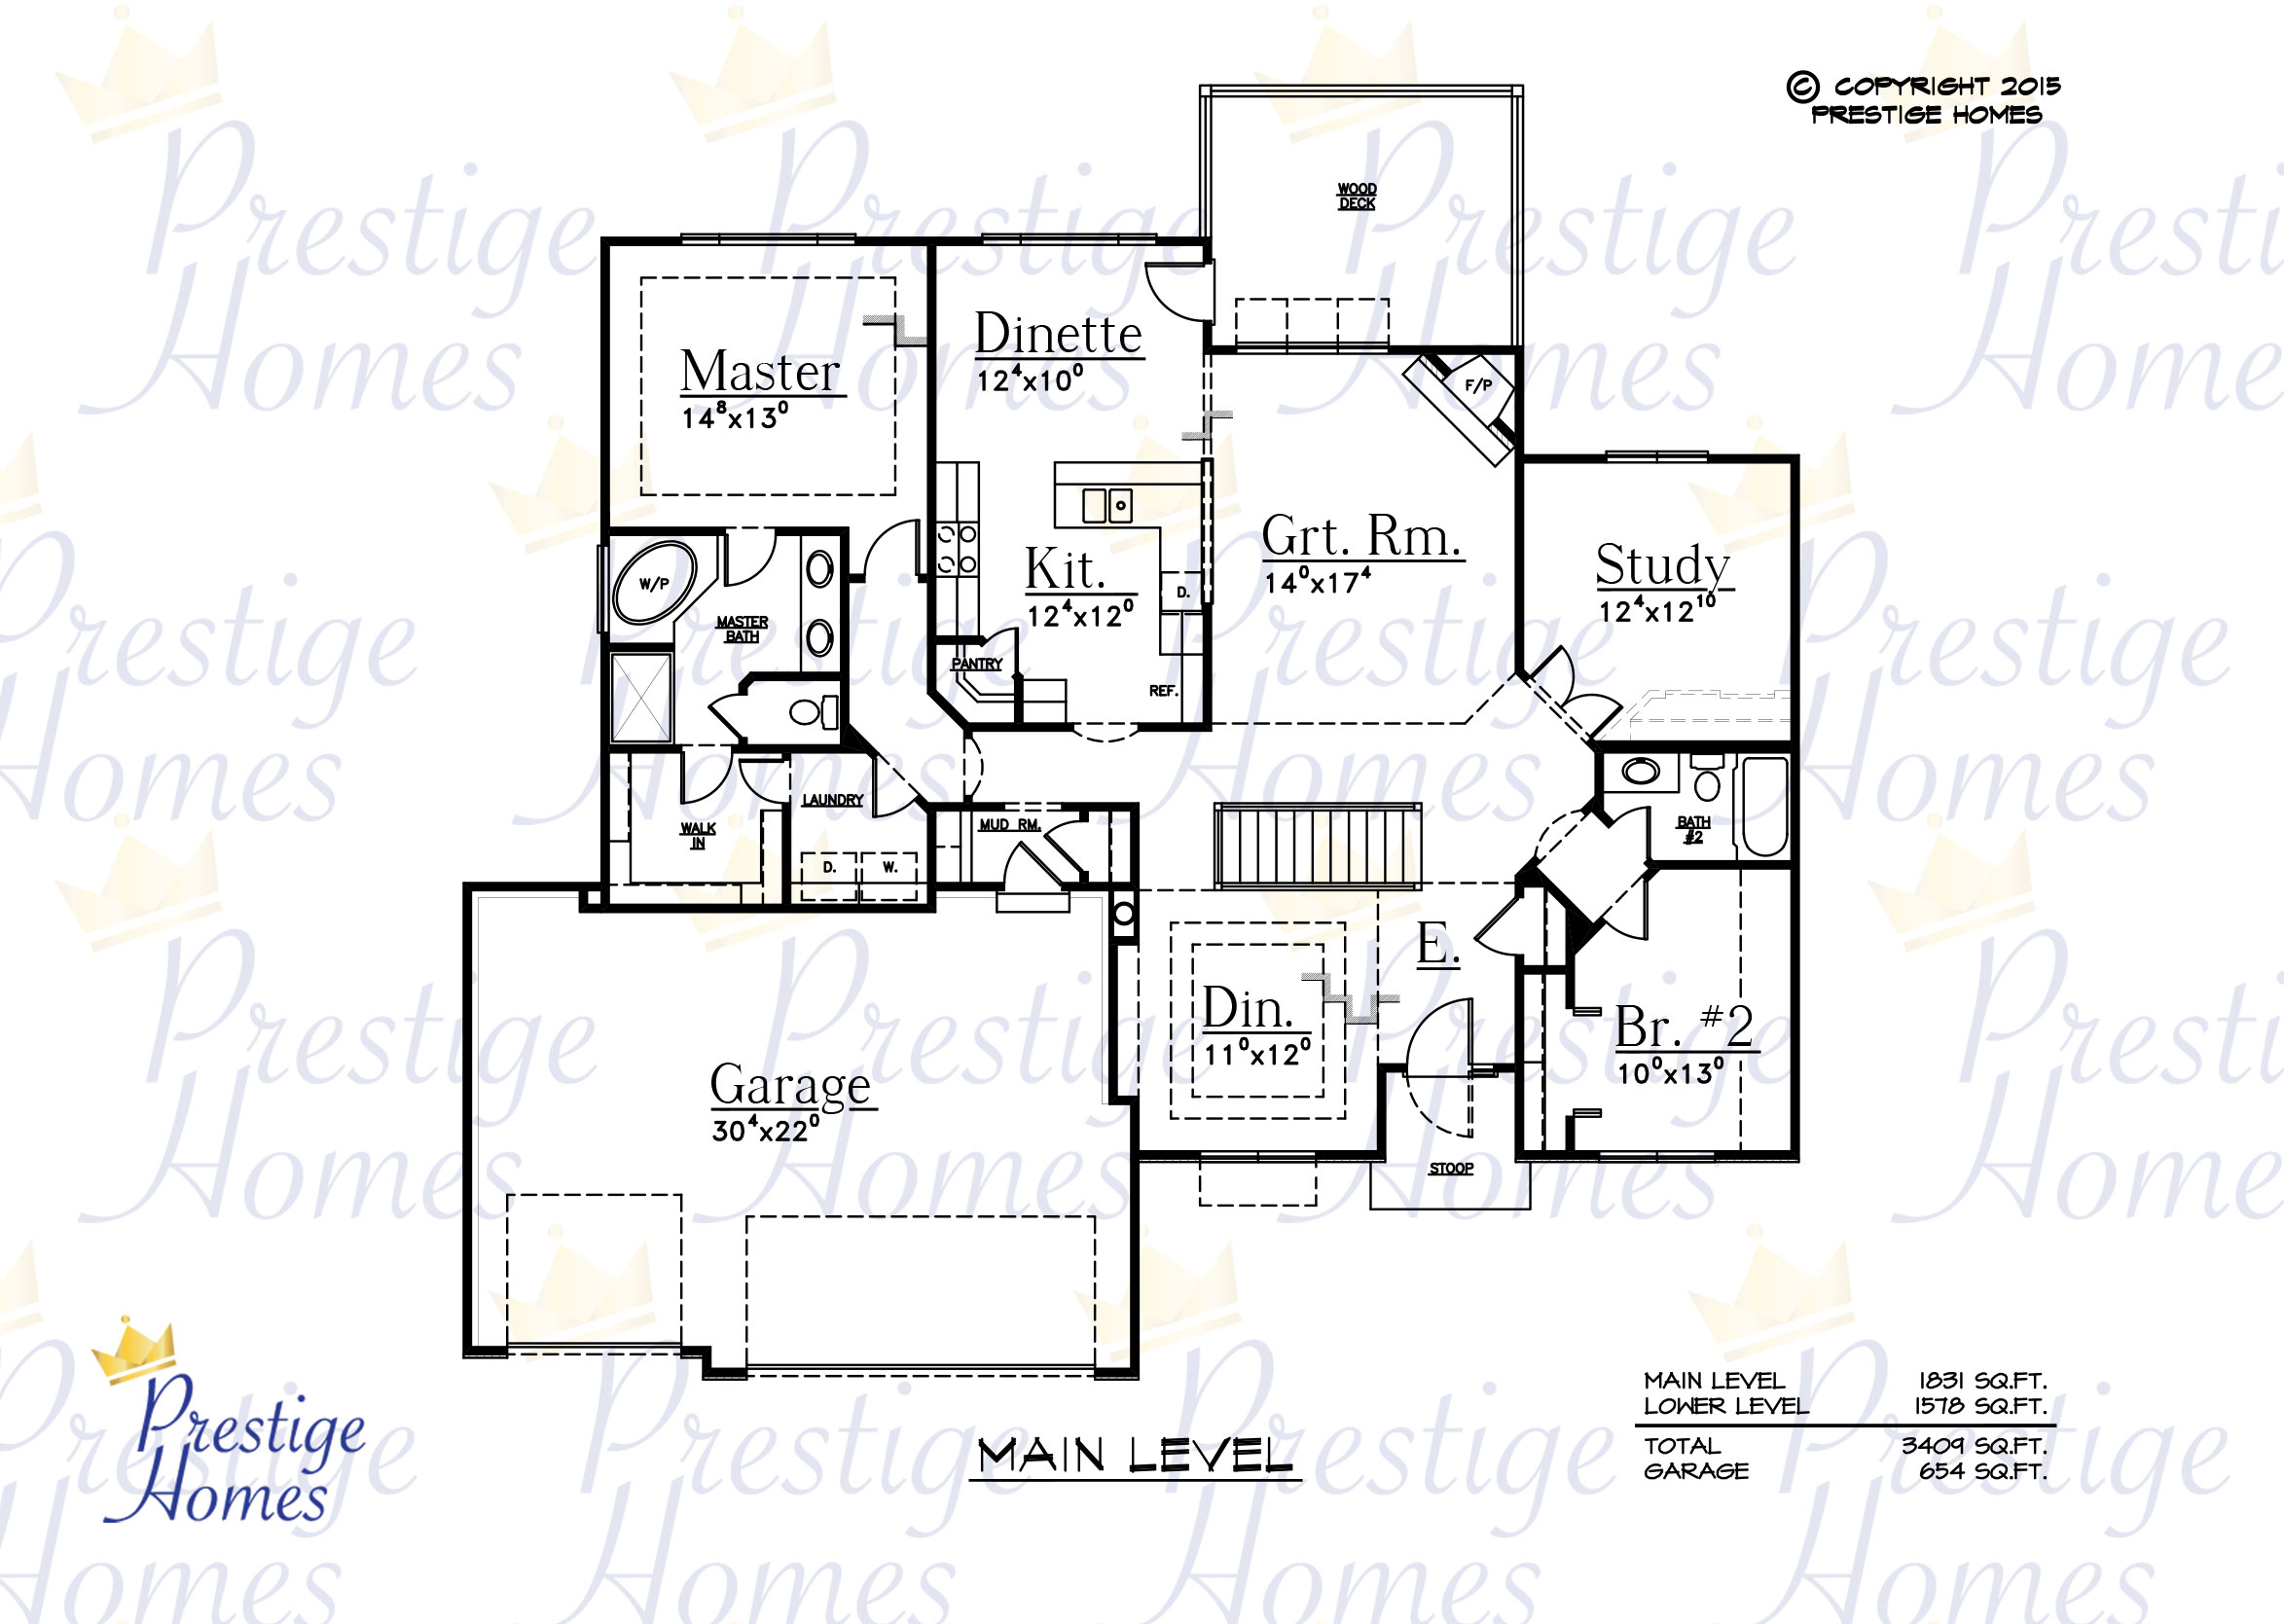 Prestige Homes - Floor Plan - Anna - Main